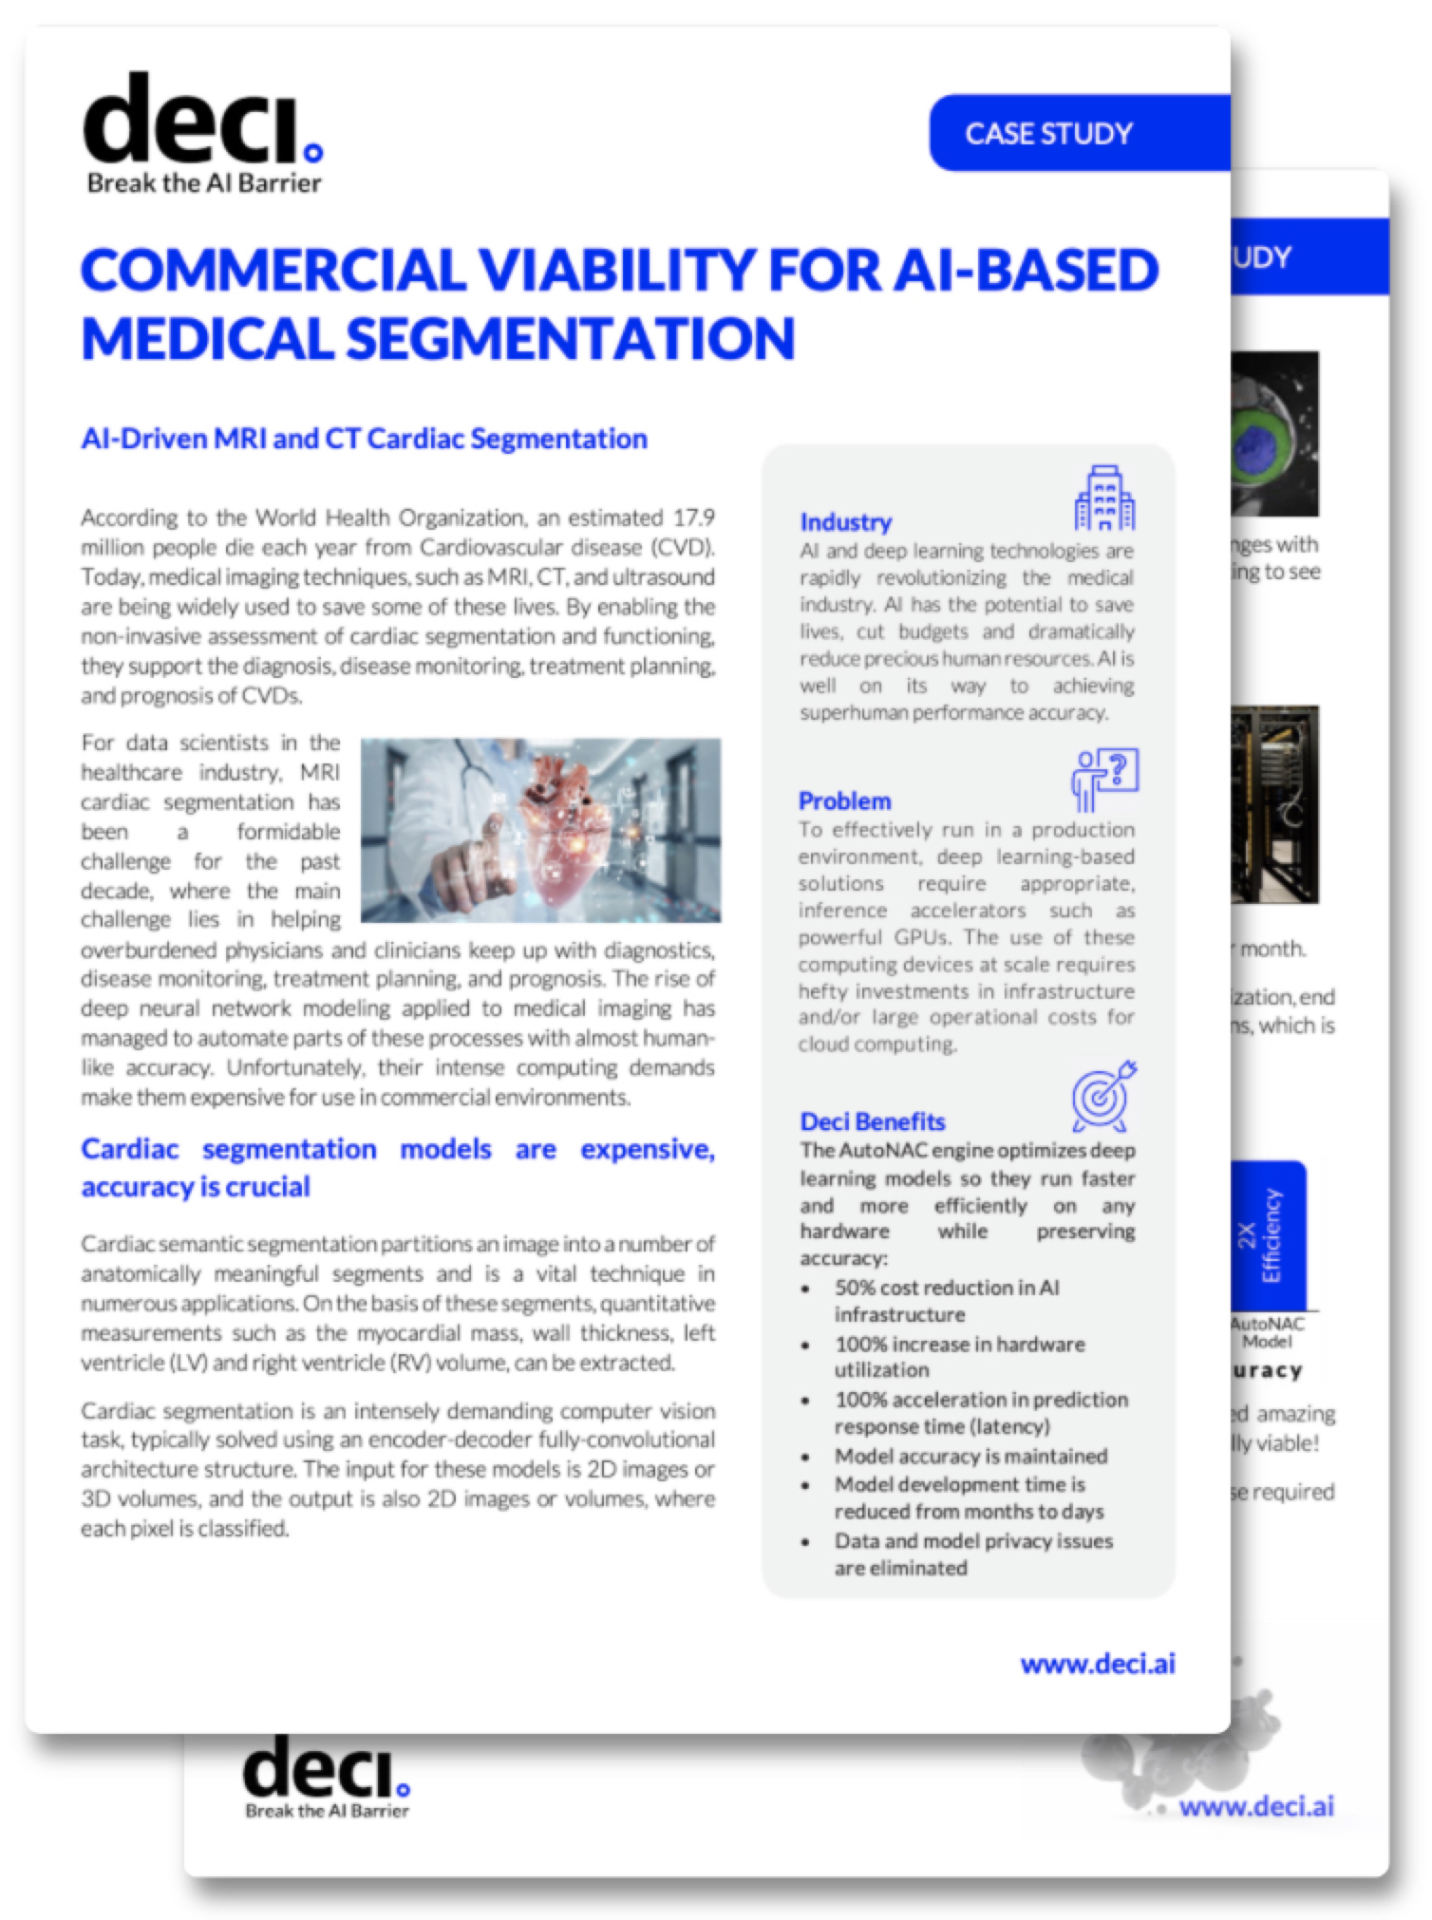 Preview - Commercial Viability for AI-based Medical Segmentation